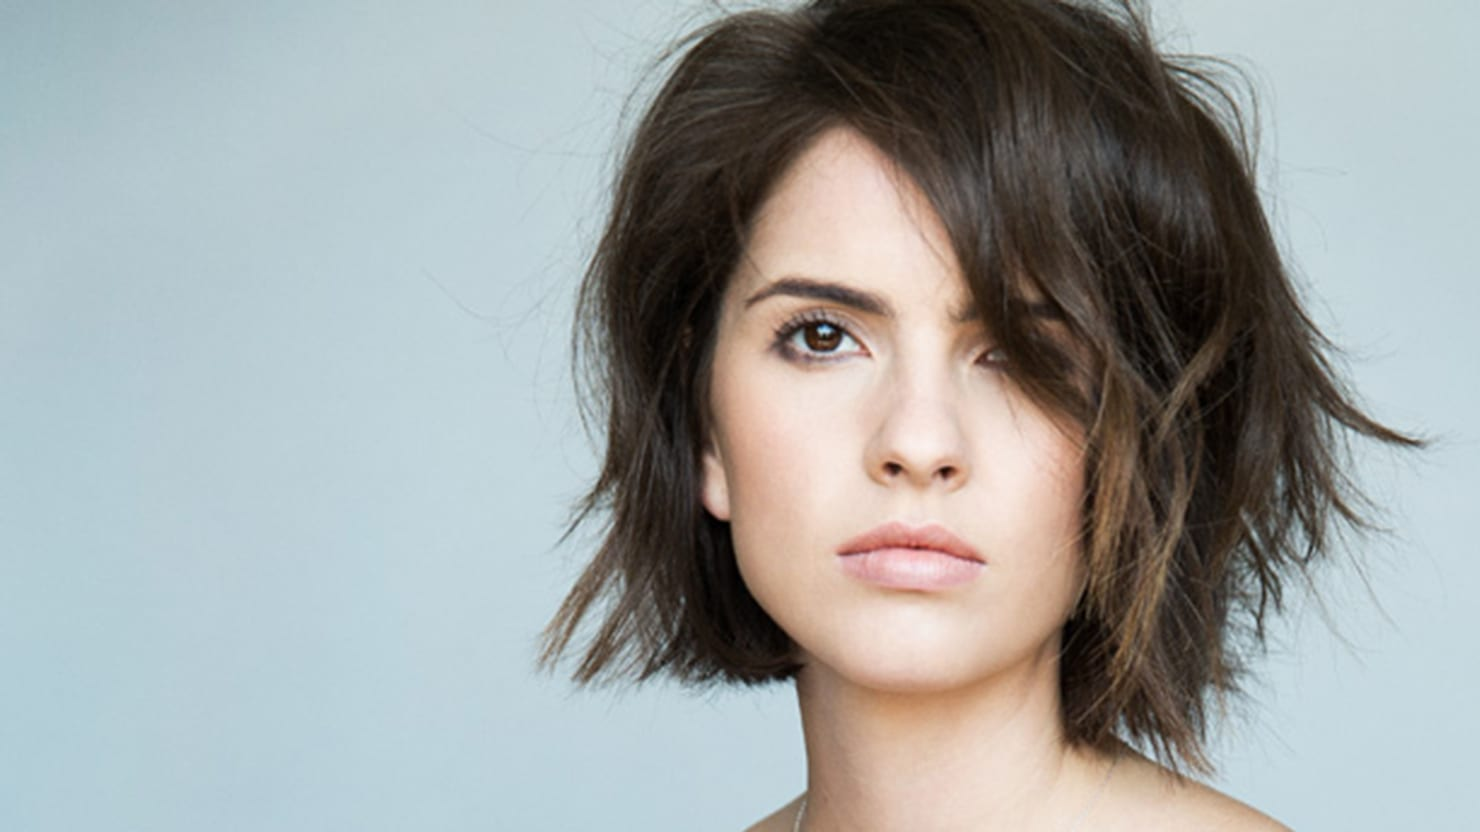 Hair Style Upload Photo: Get To Know Shelley Hennig, The 'Unfriended' Star And